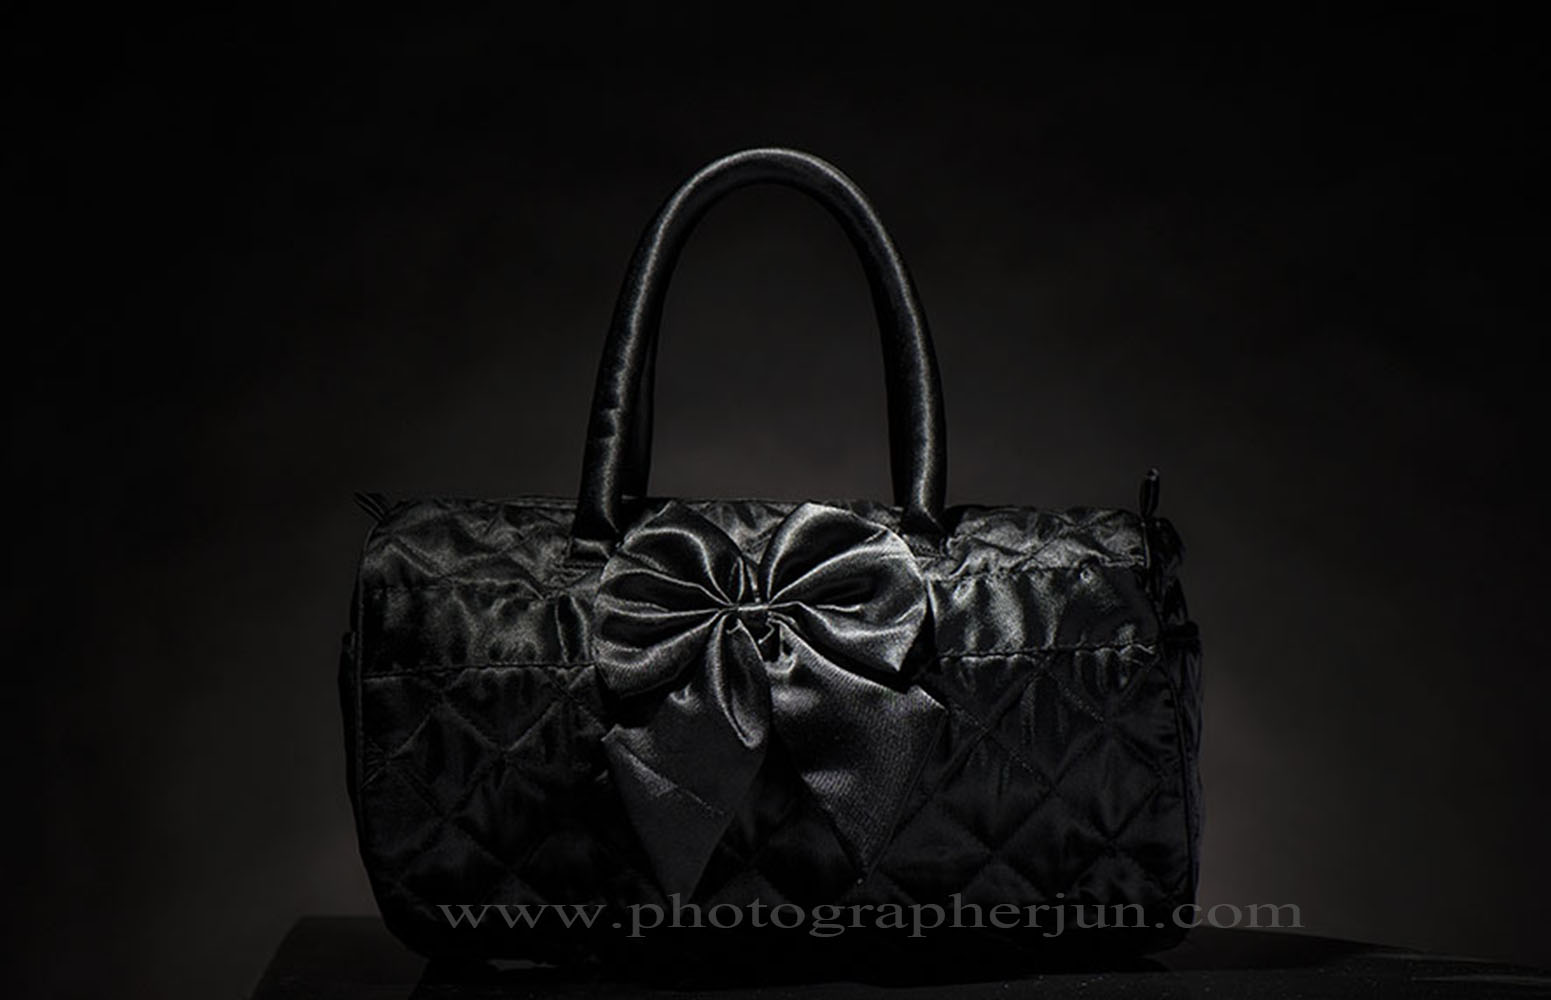 fashion bag product photography